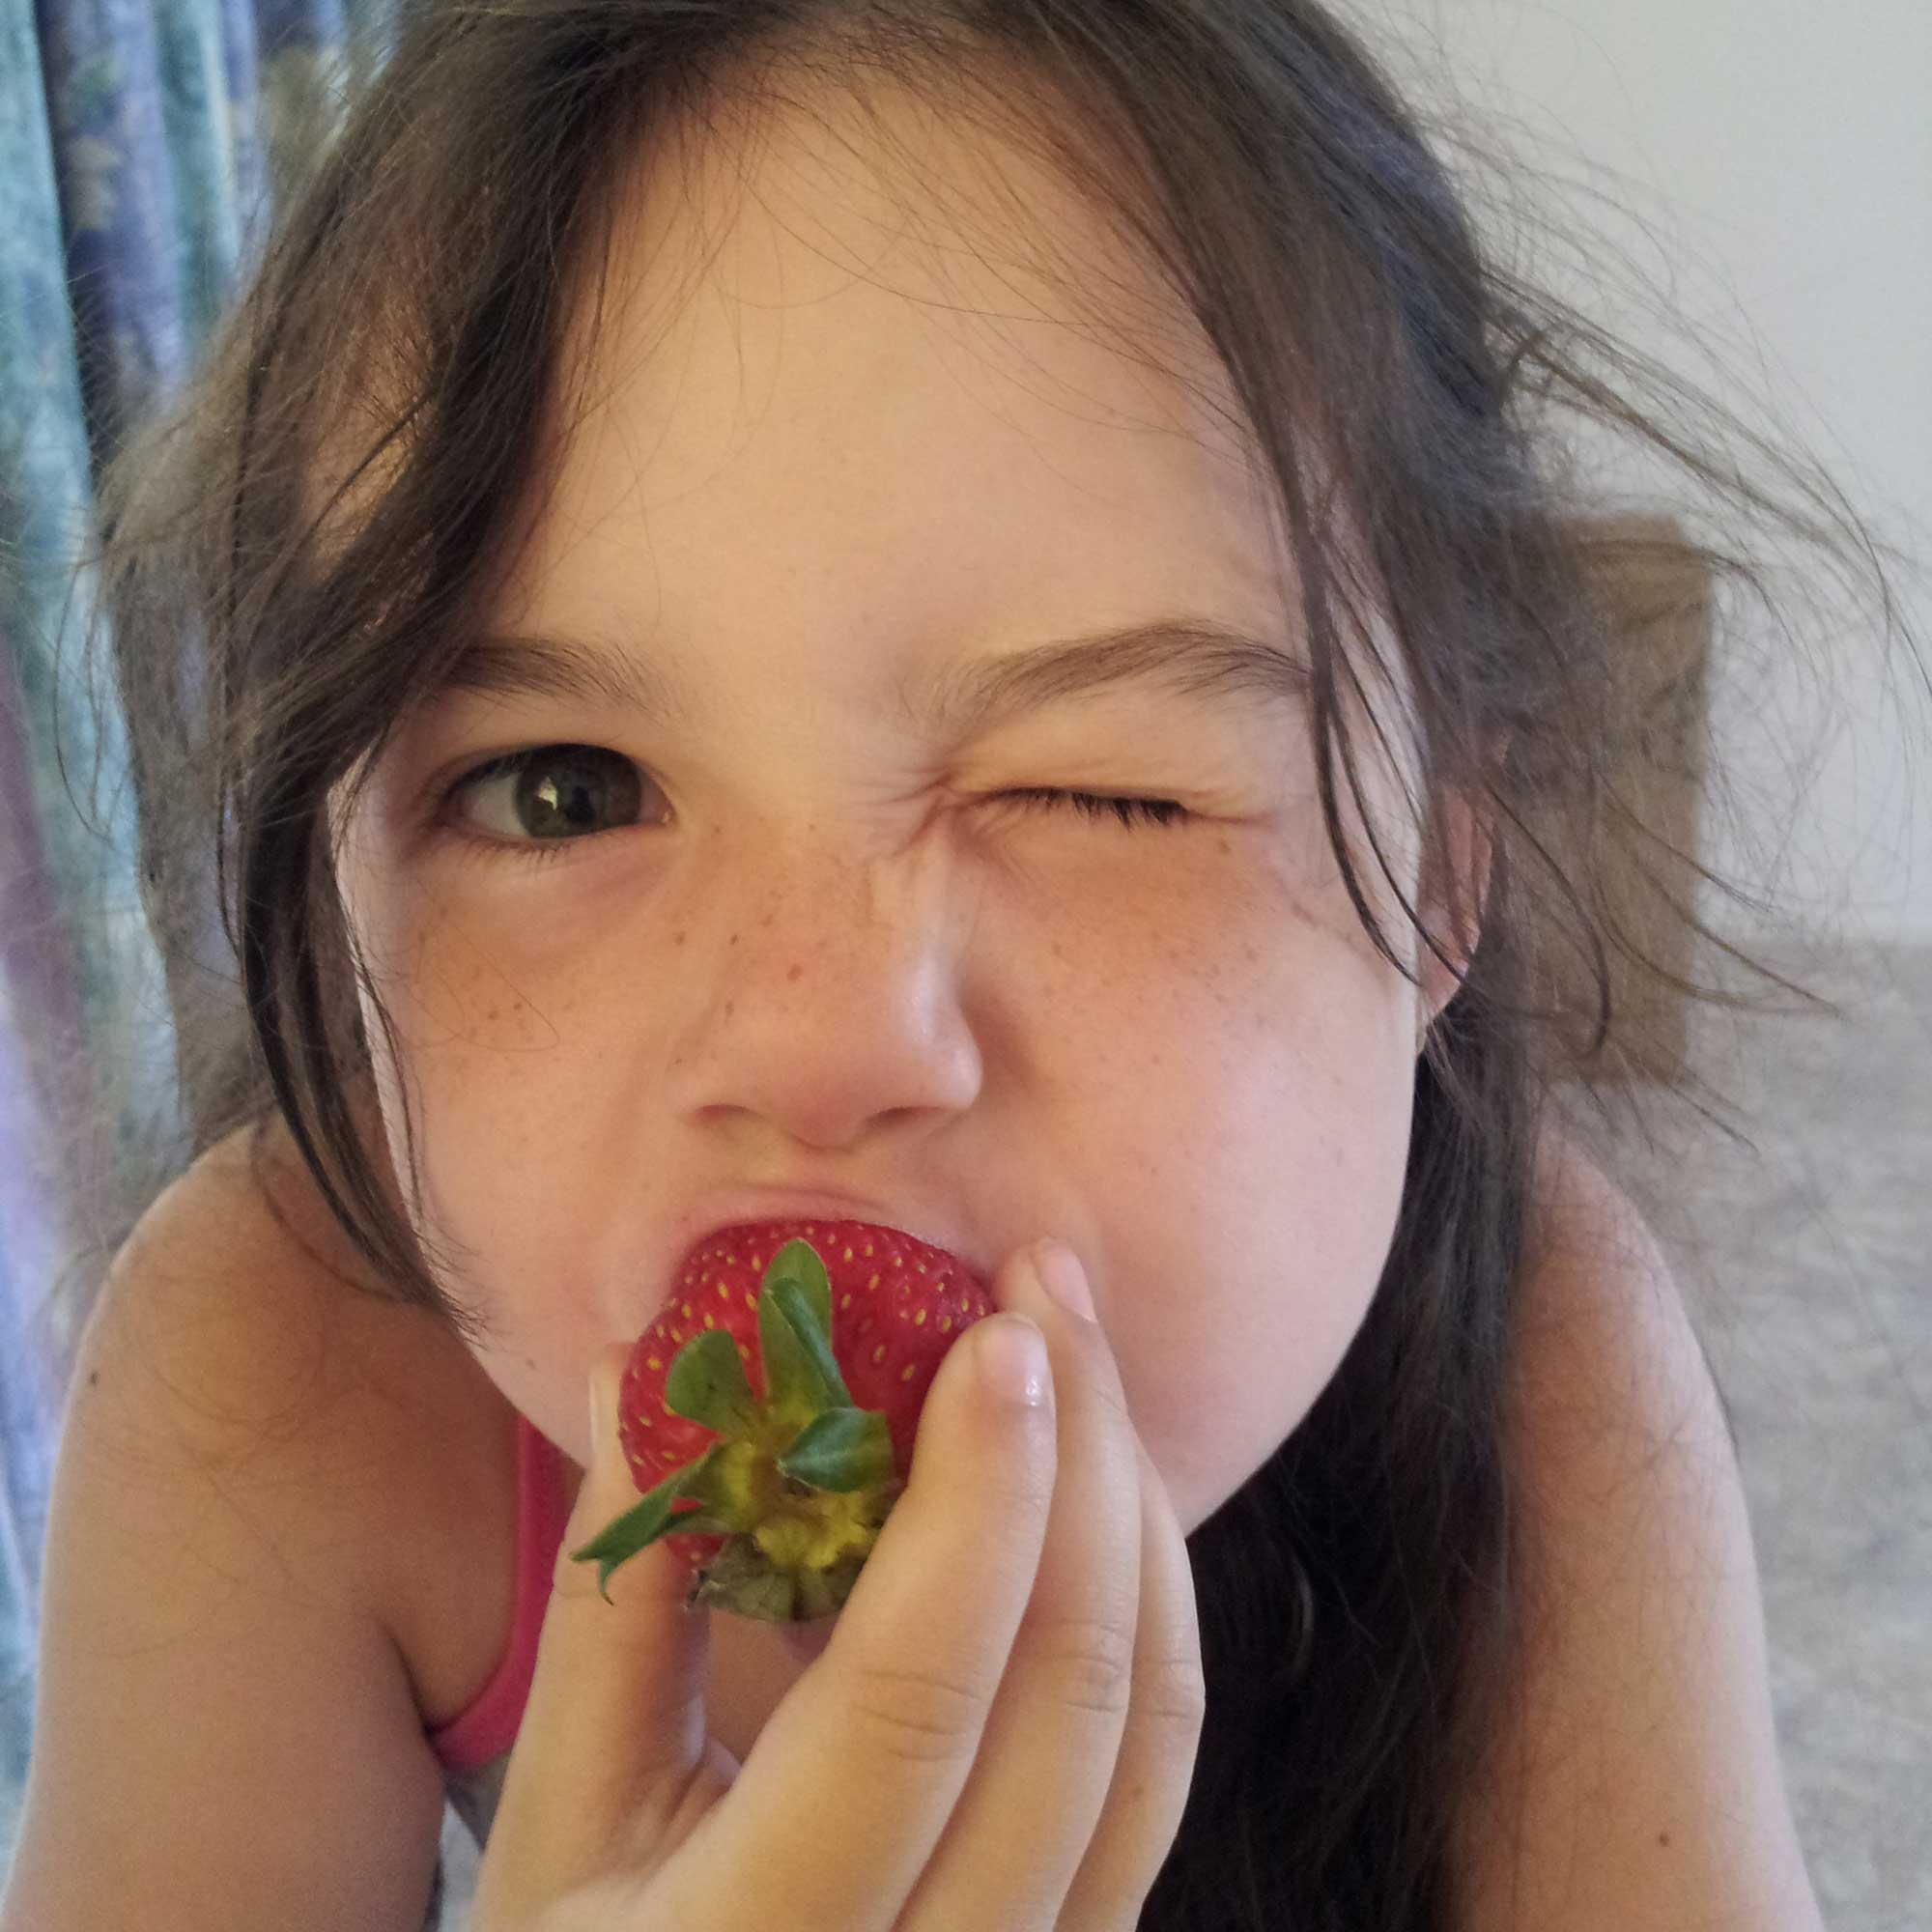 Tookii things to do with kids loves strawberries one of the activities for kids